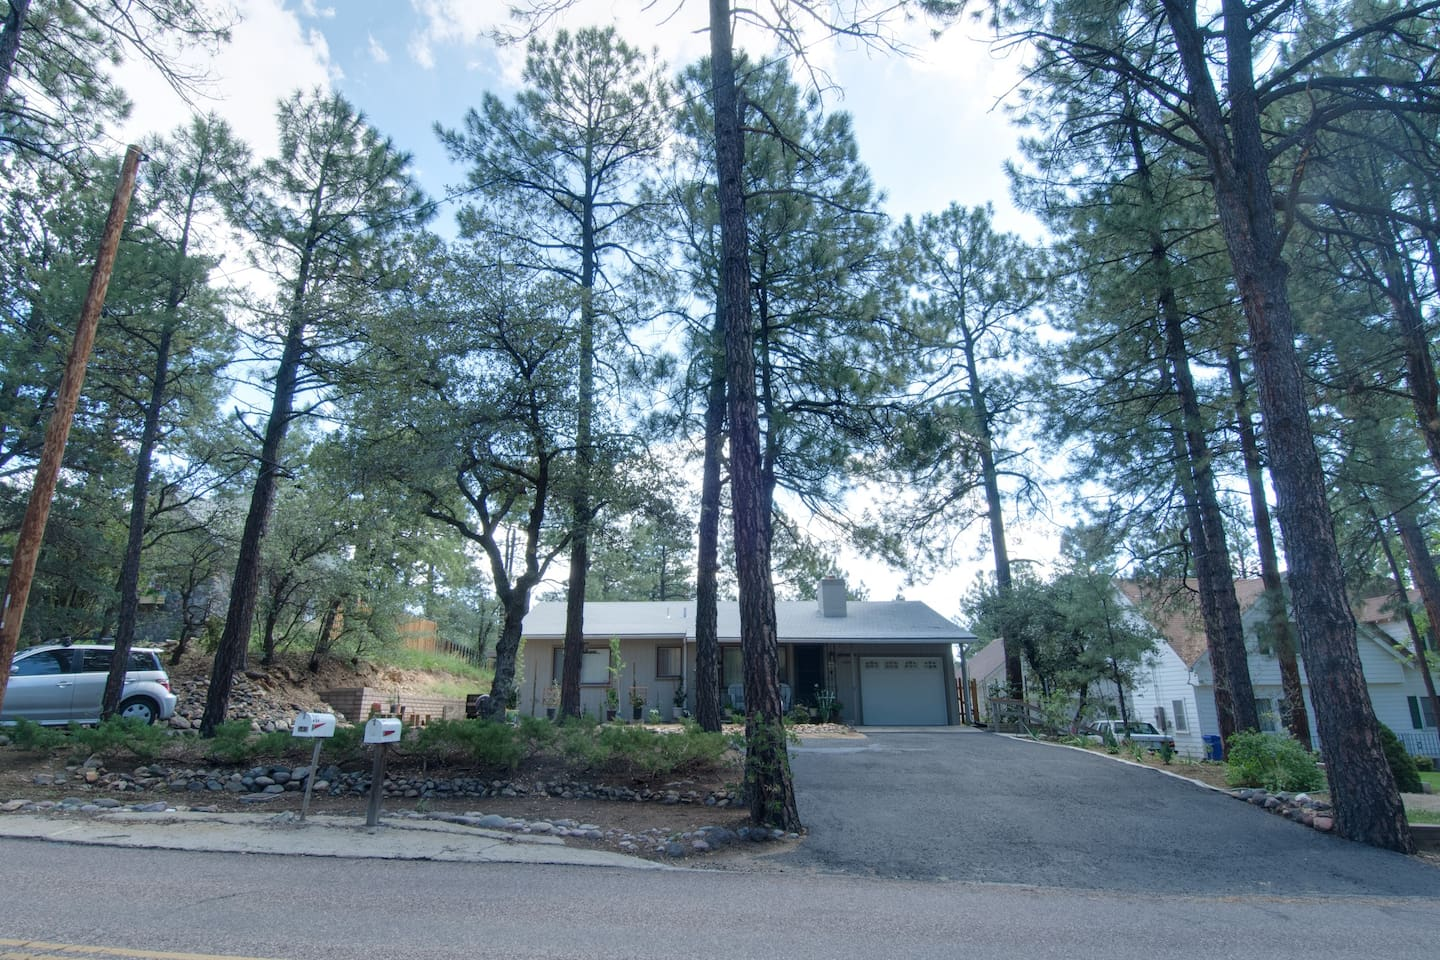 Front view of main house. We are in the tall trees of downtown Prescott.